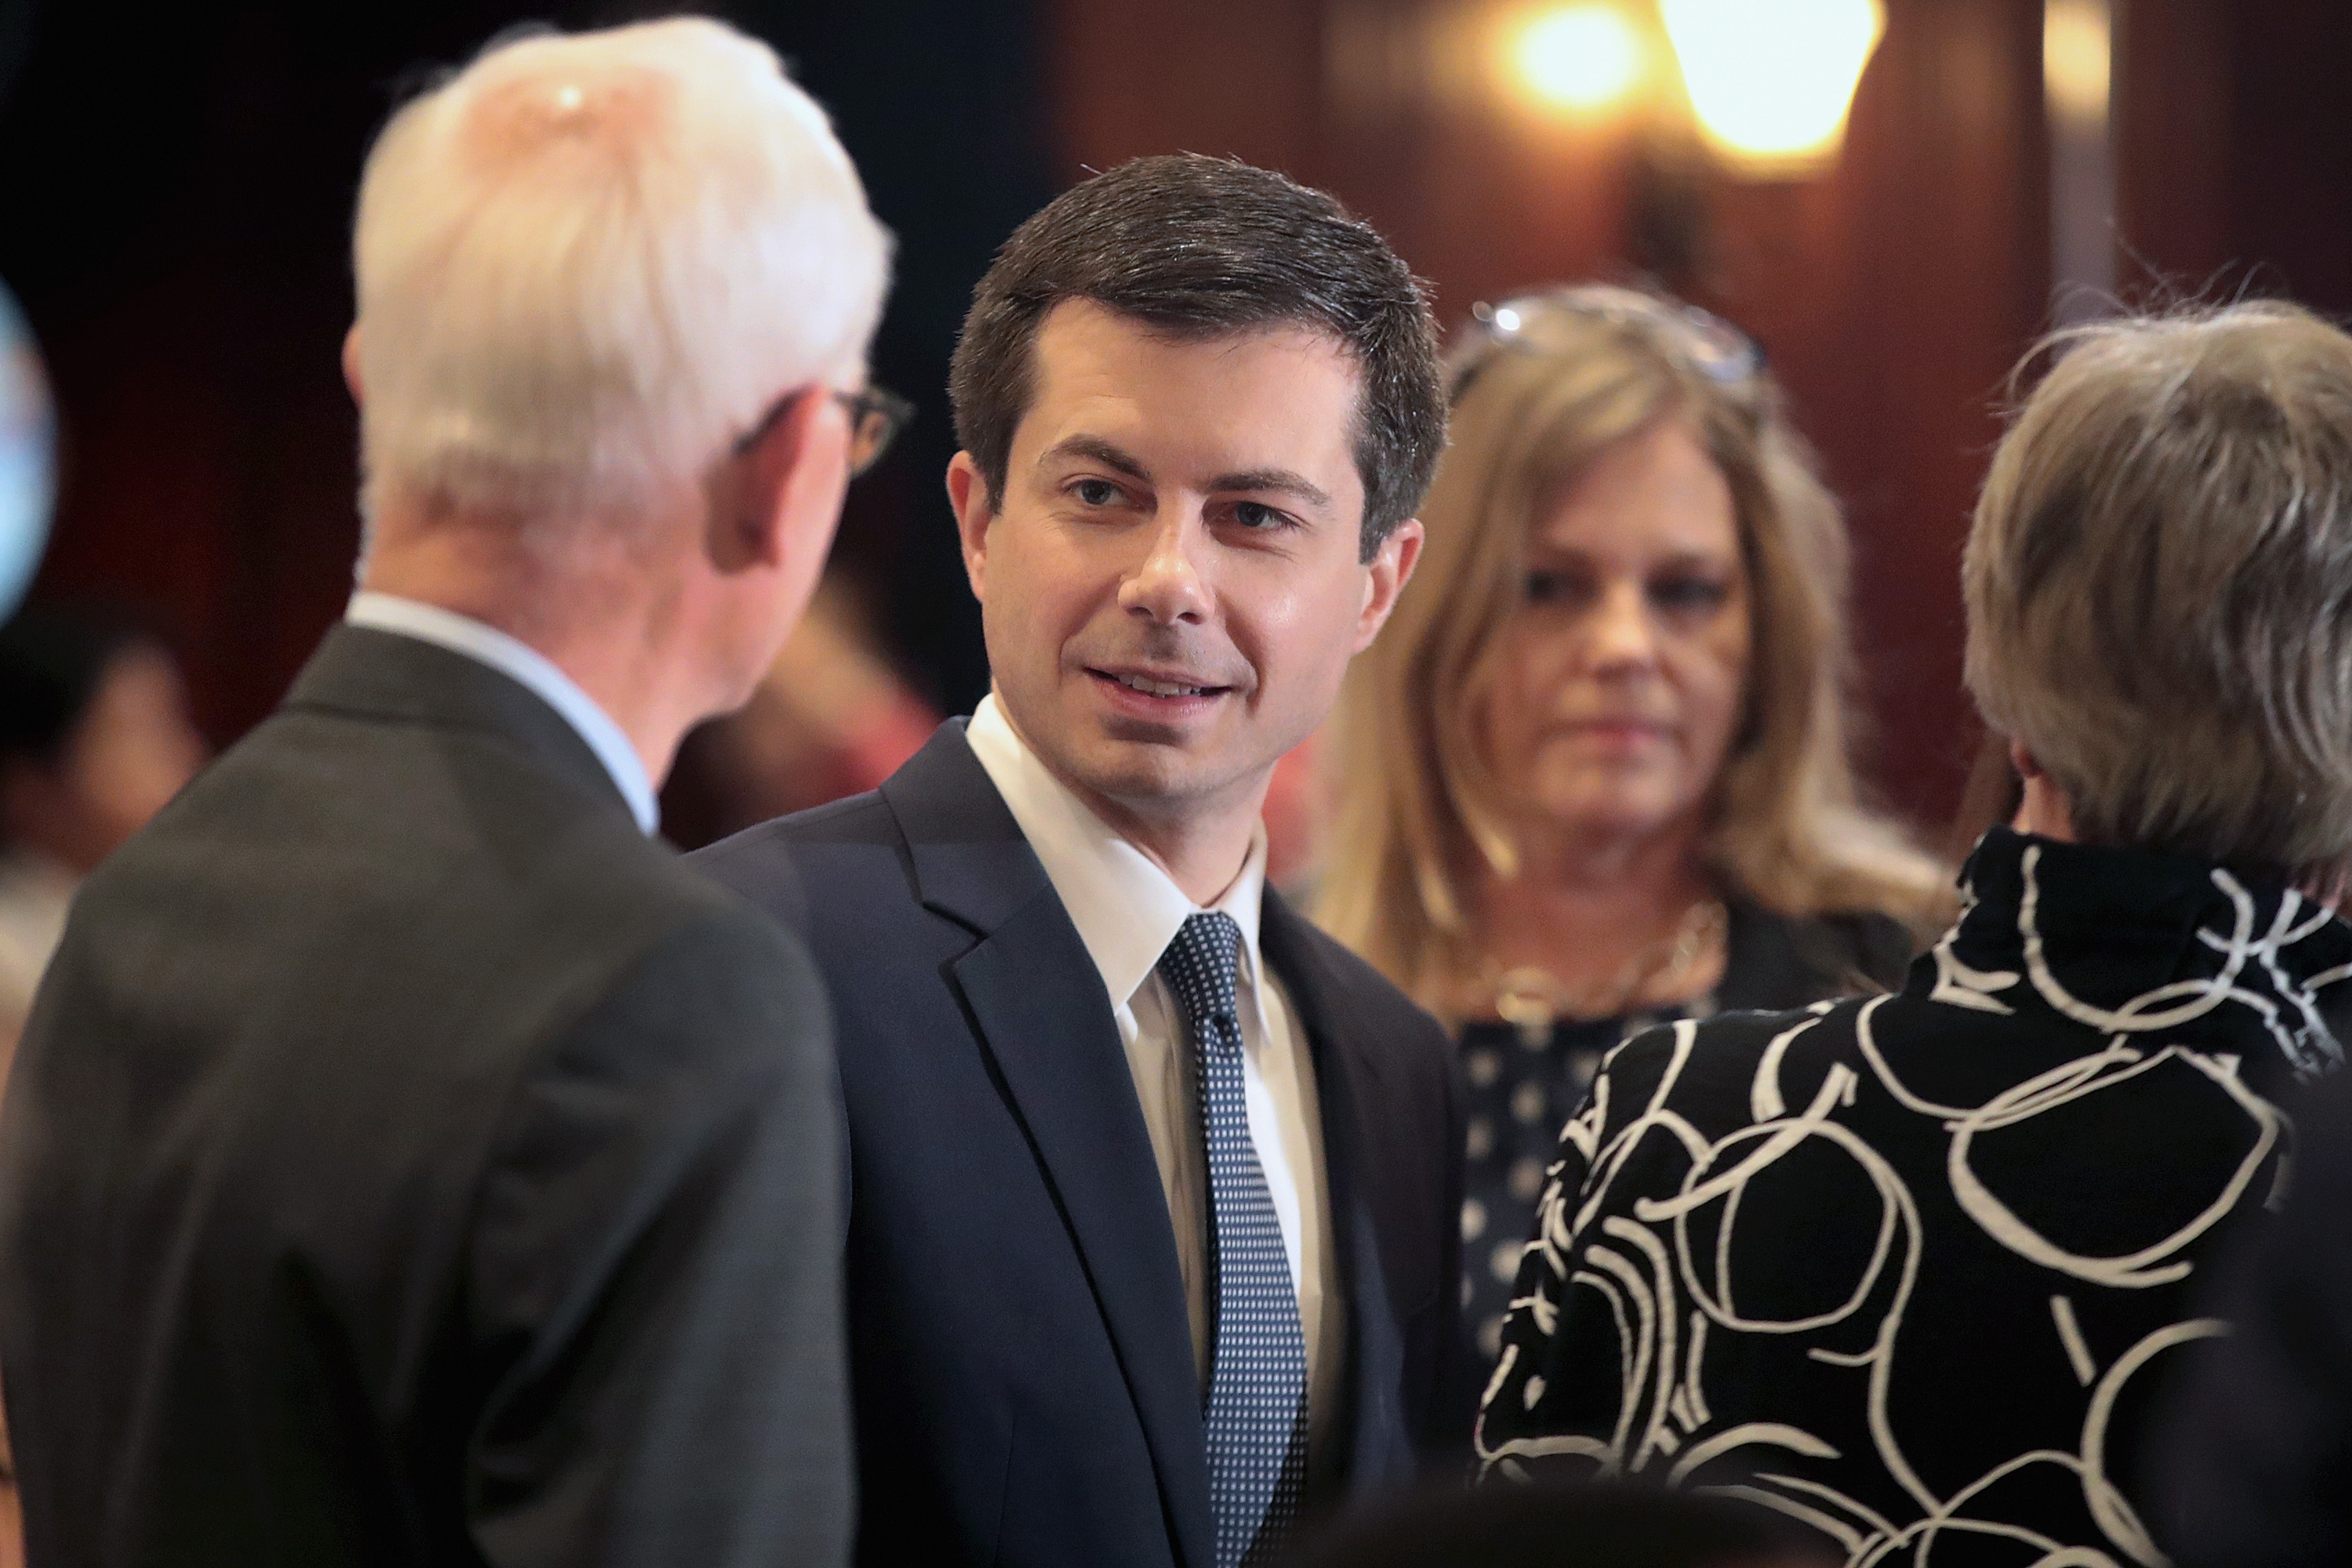 Pete Buttigieg shuts down a conservative talking point about abortion rights